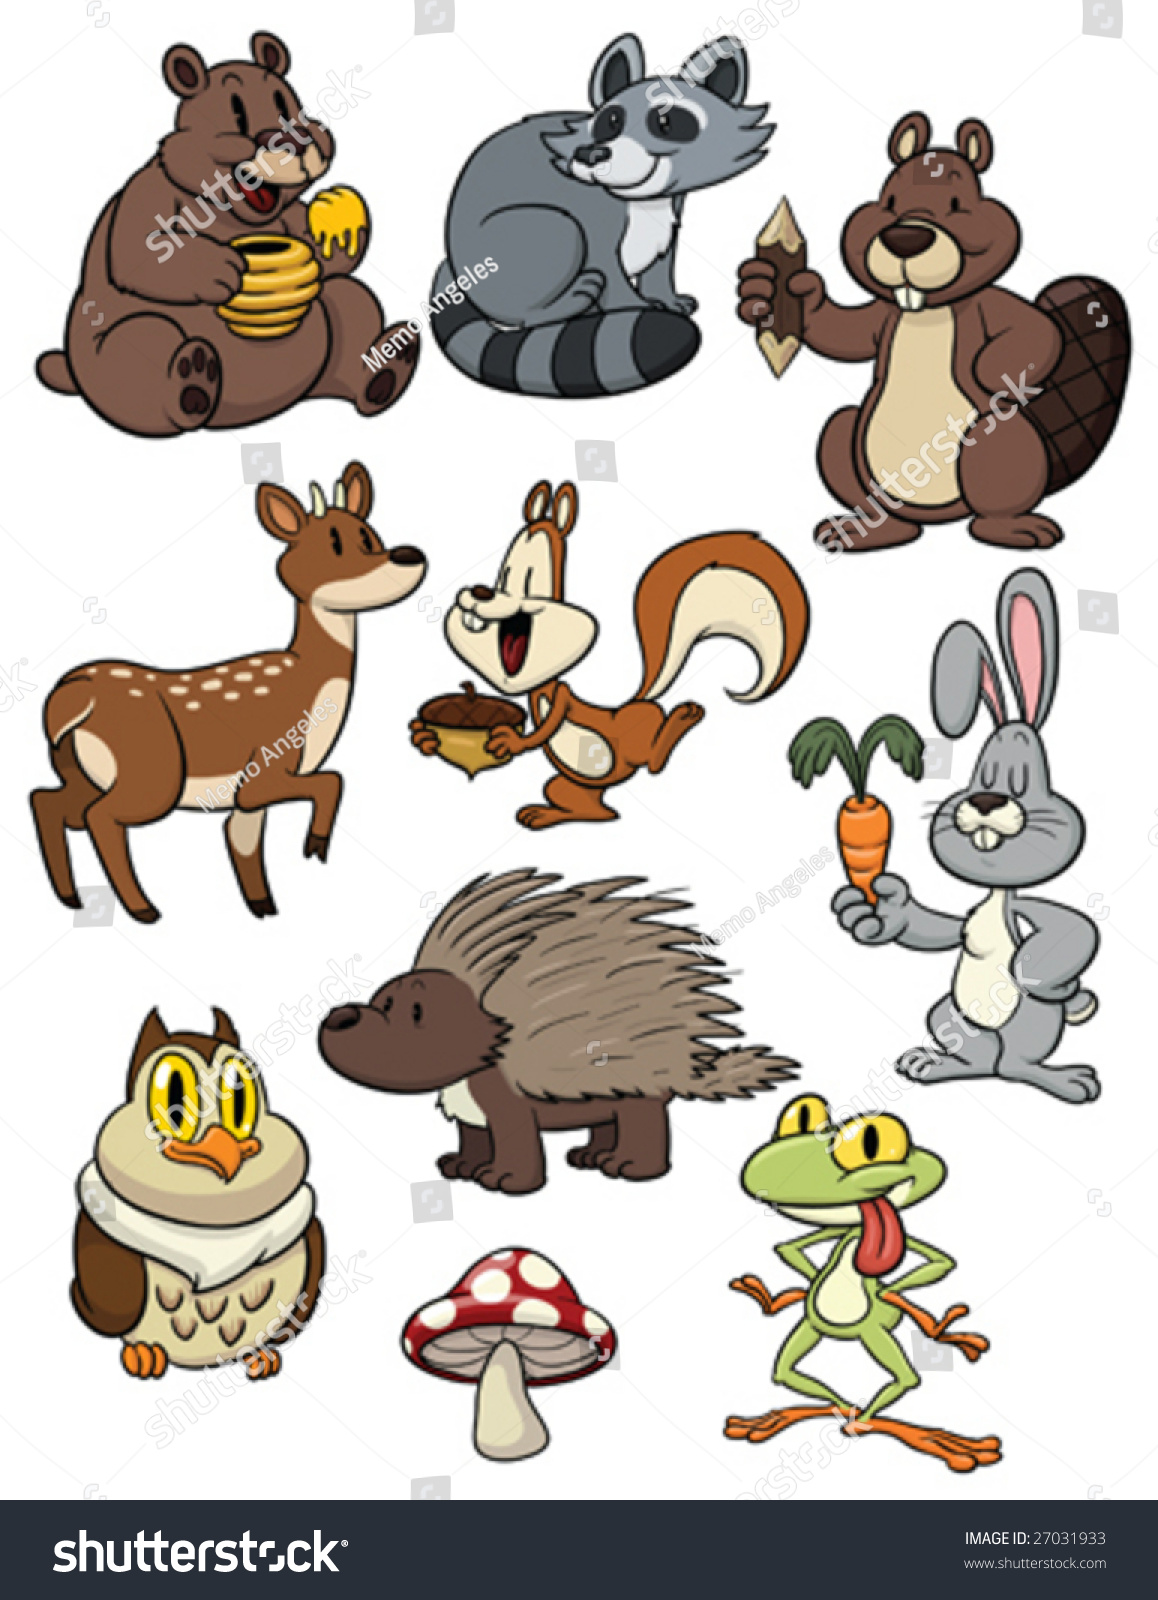 Cartoon Animals Together Pictures to Pin on Pinterest ...